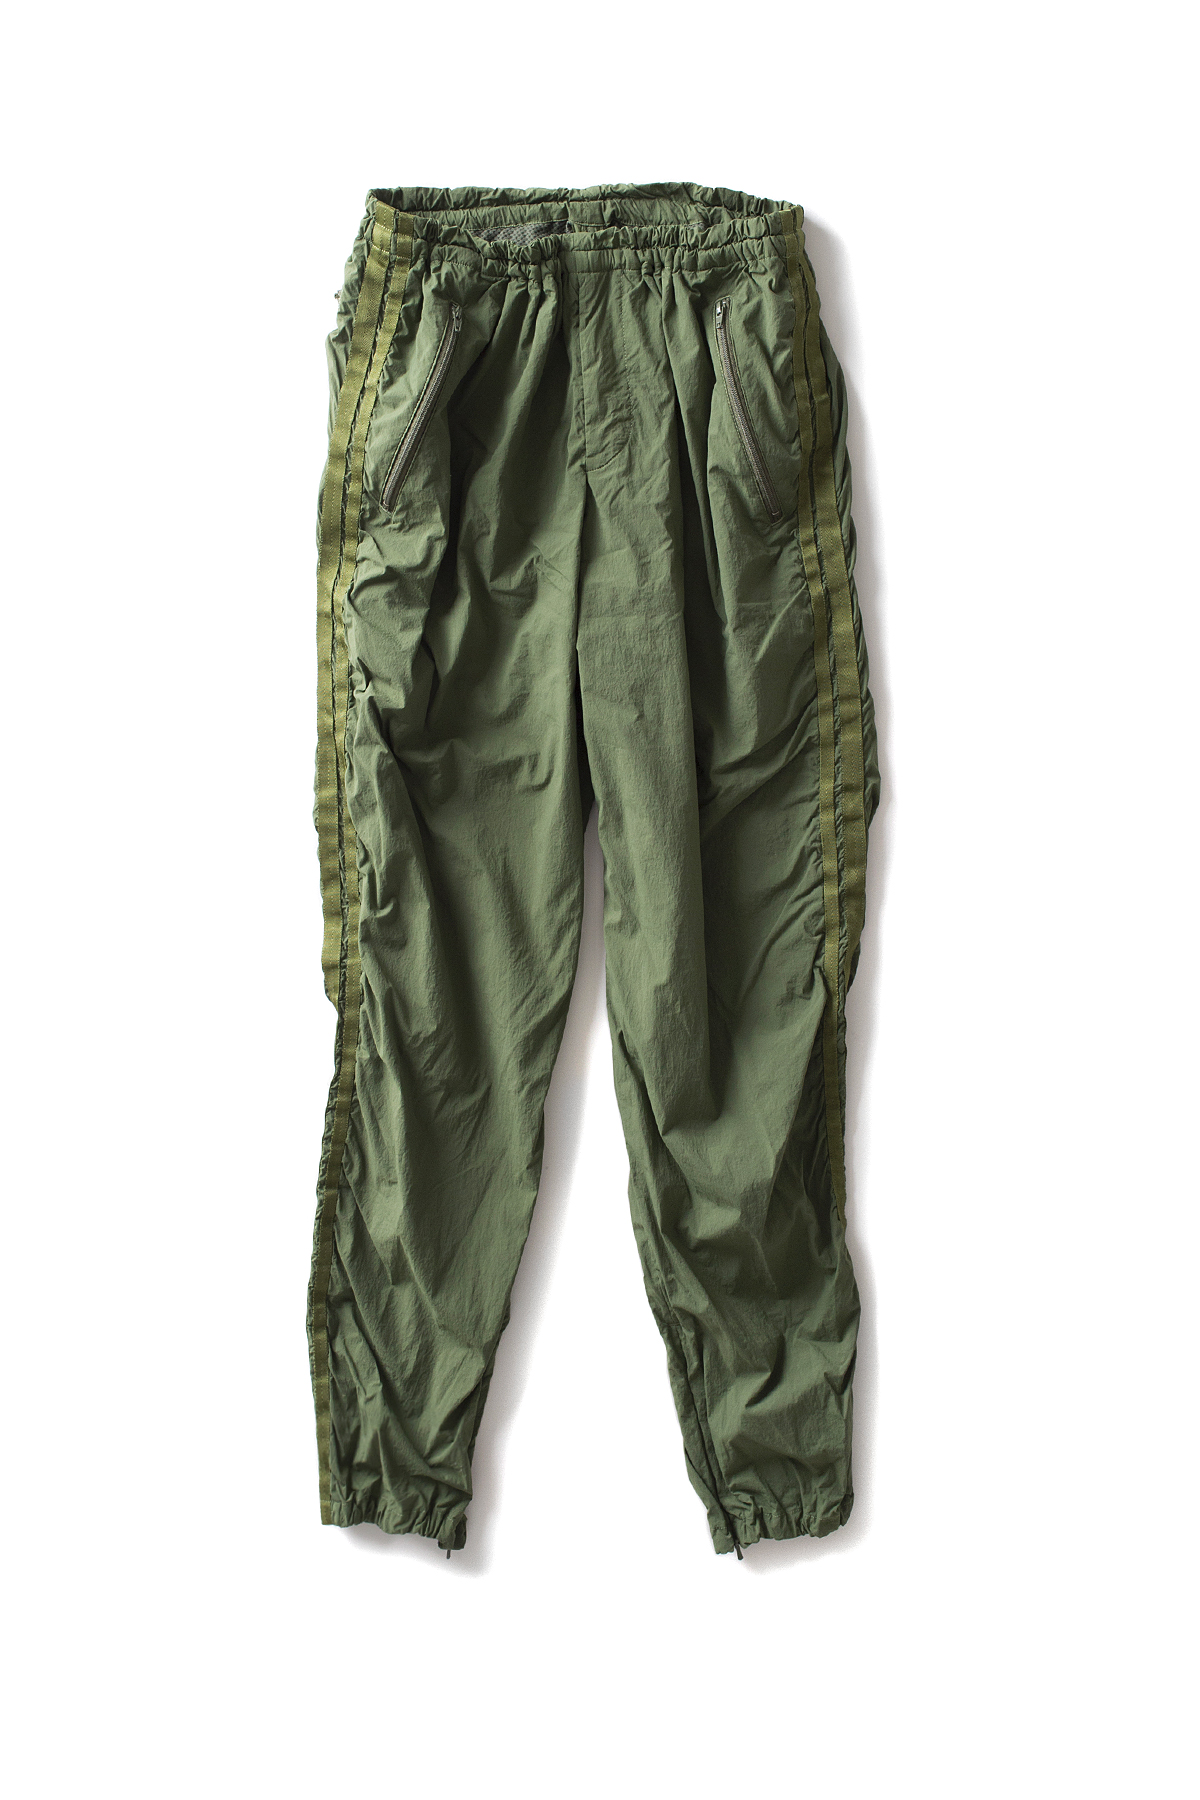 kolor / BEACON : Side Lined Pants (Khaki)